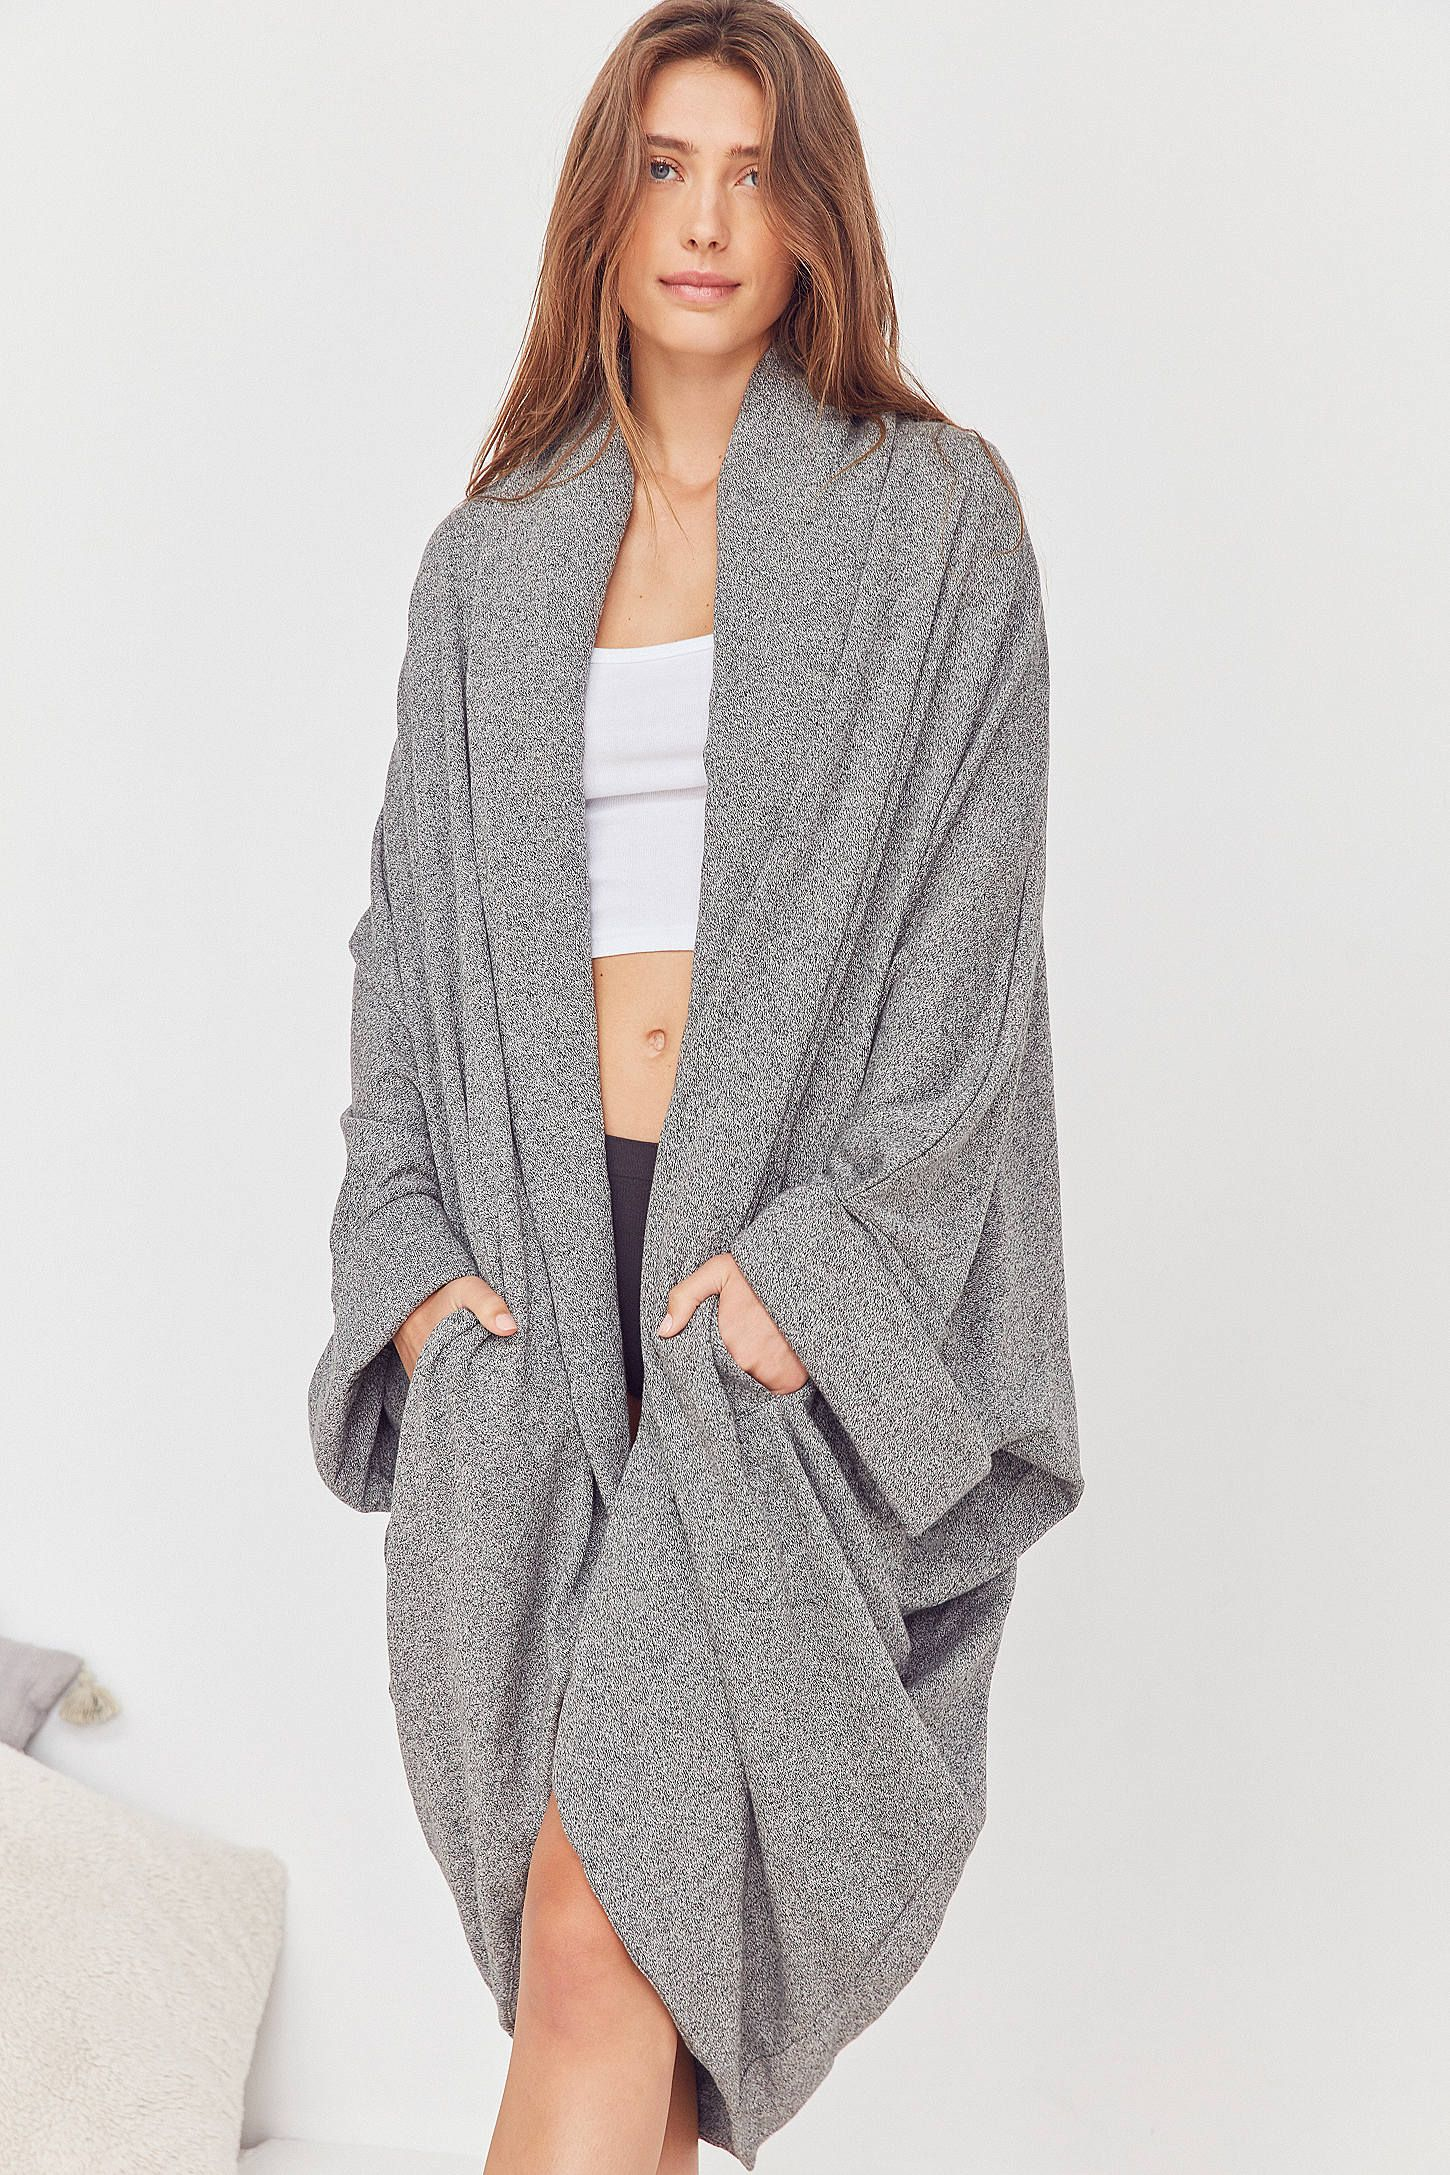 Out From Under Amber Cozy Maxi Cardigan | Maxi cardigan, Latest ...